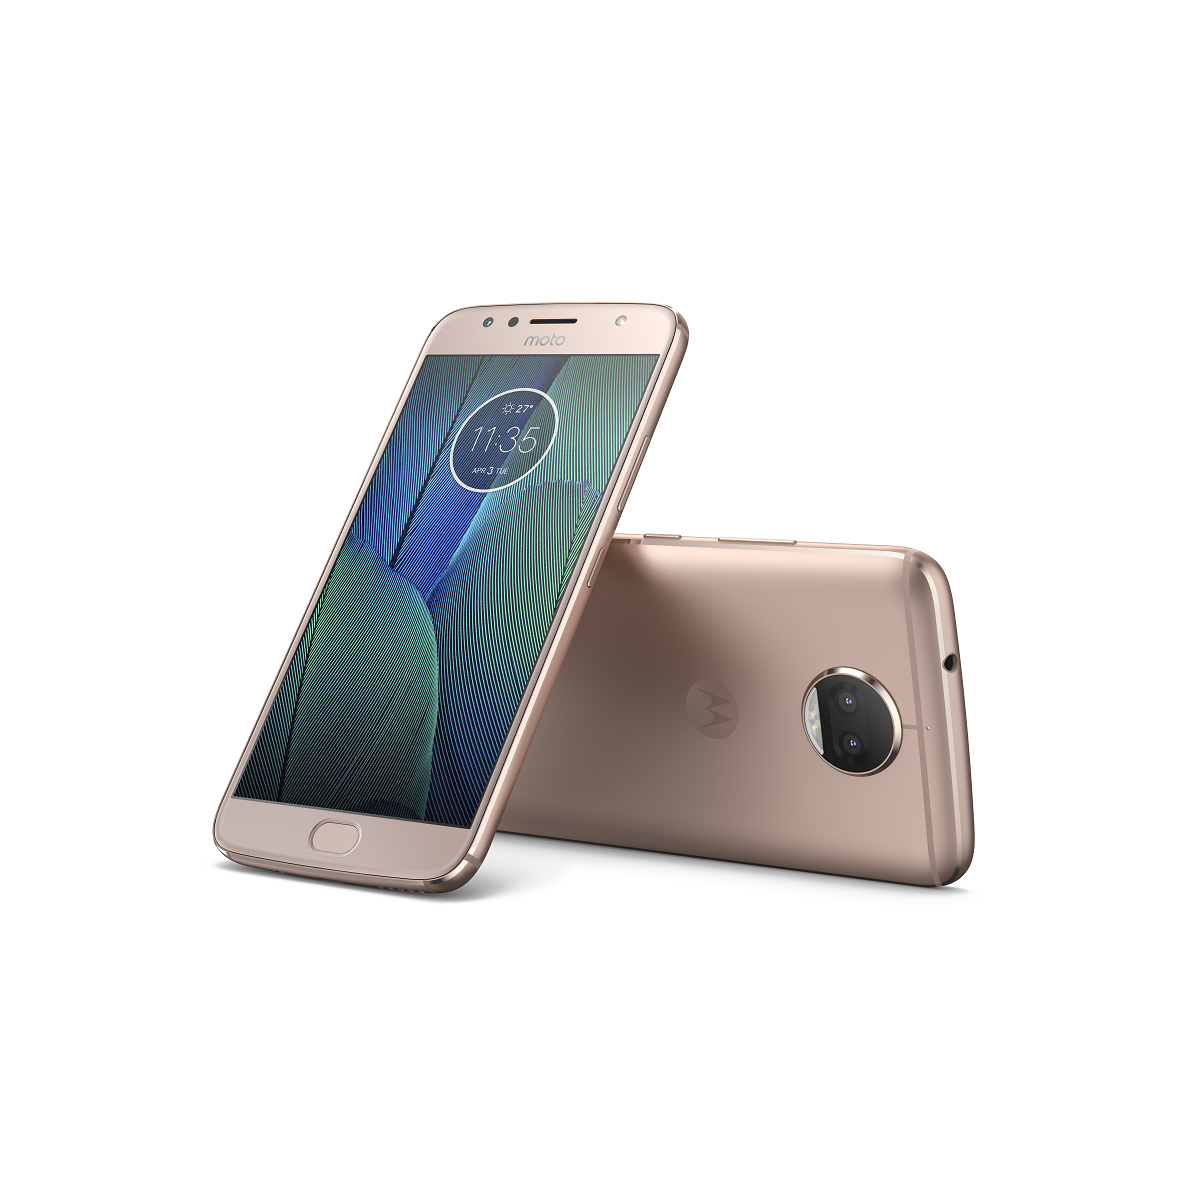 "Motorola Moto G5s Plus Dual SIM/5,5"" IPS/1920x1080/Octa-Core/2,0GHz/4GB/32GB/13Mpx/LTE/Android 7.0/Blush Gold"